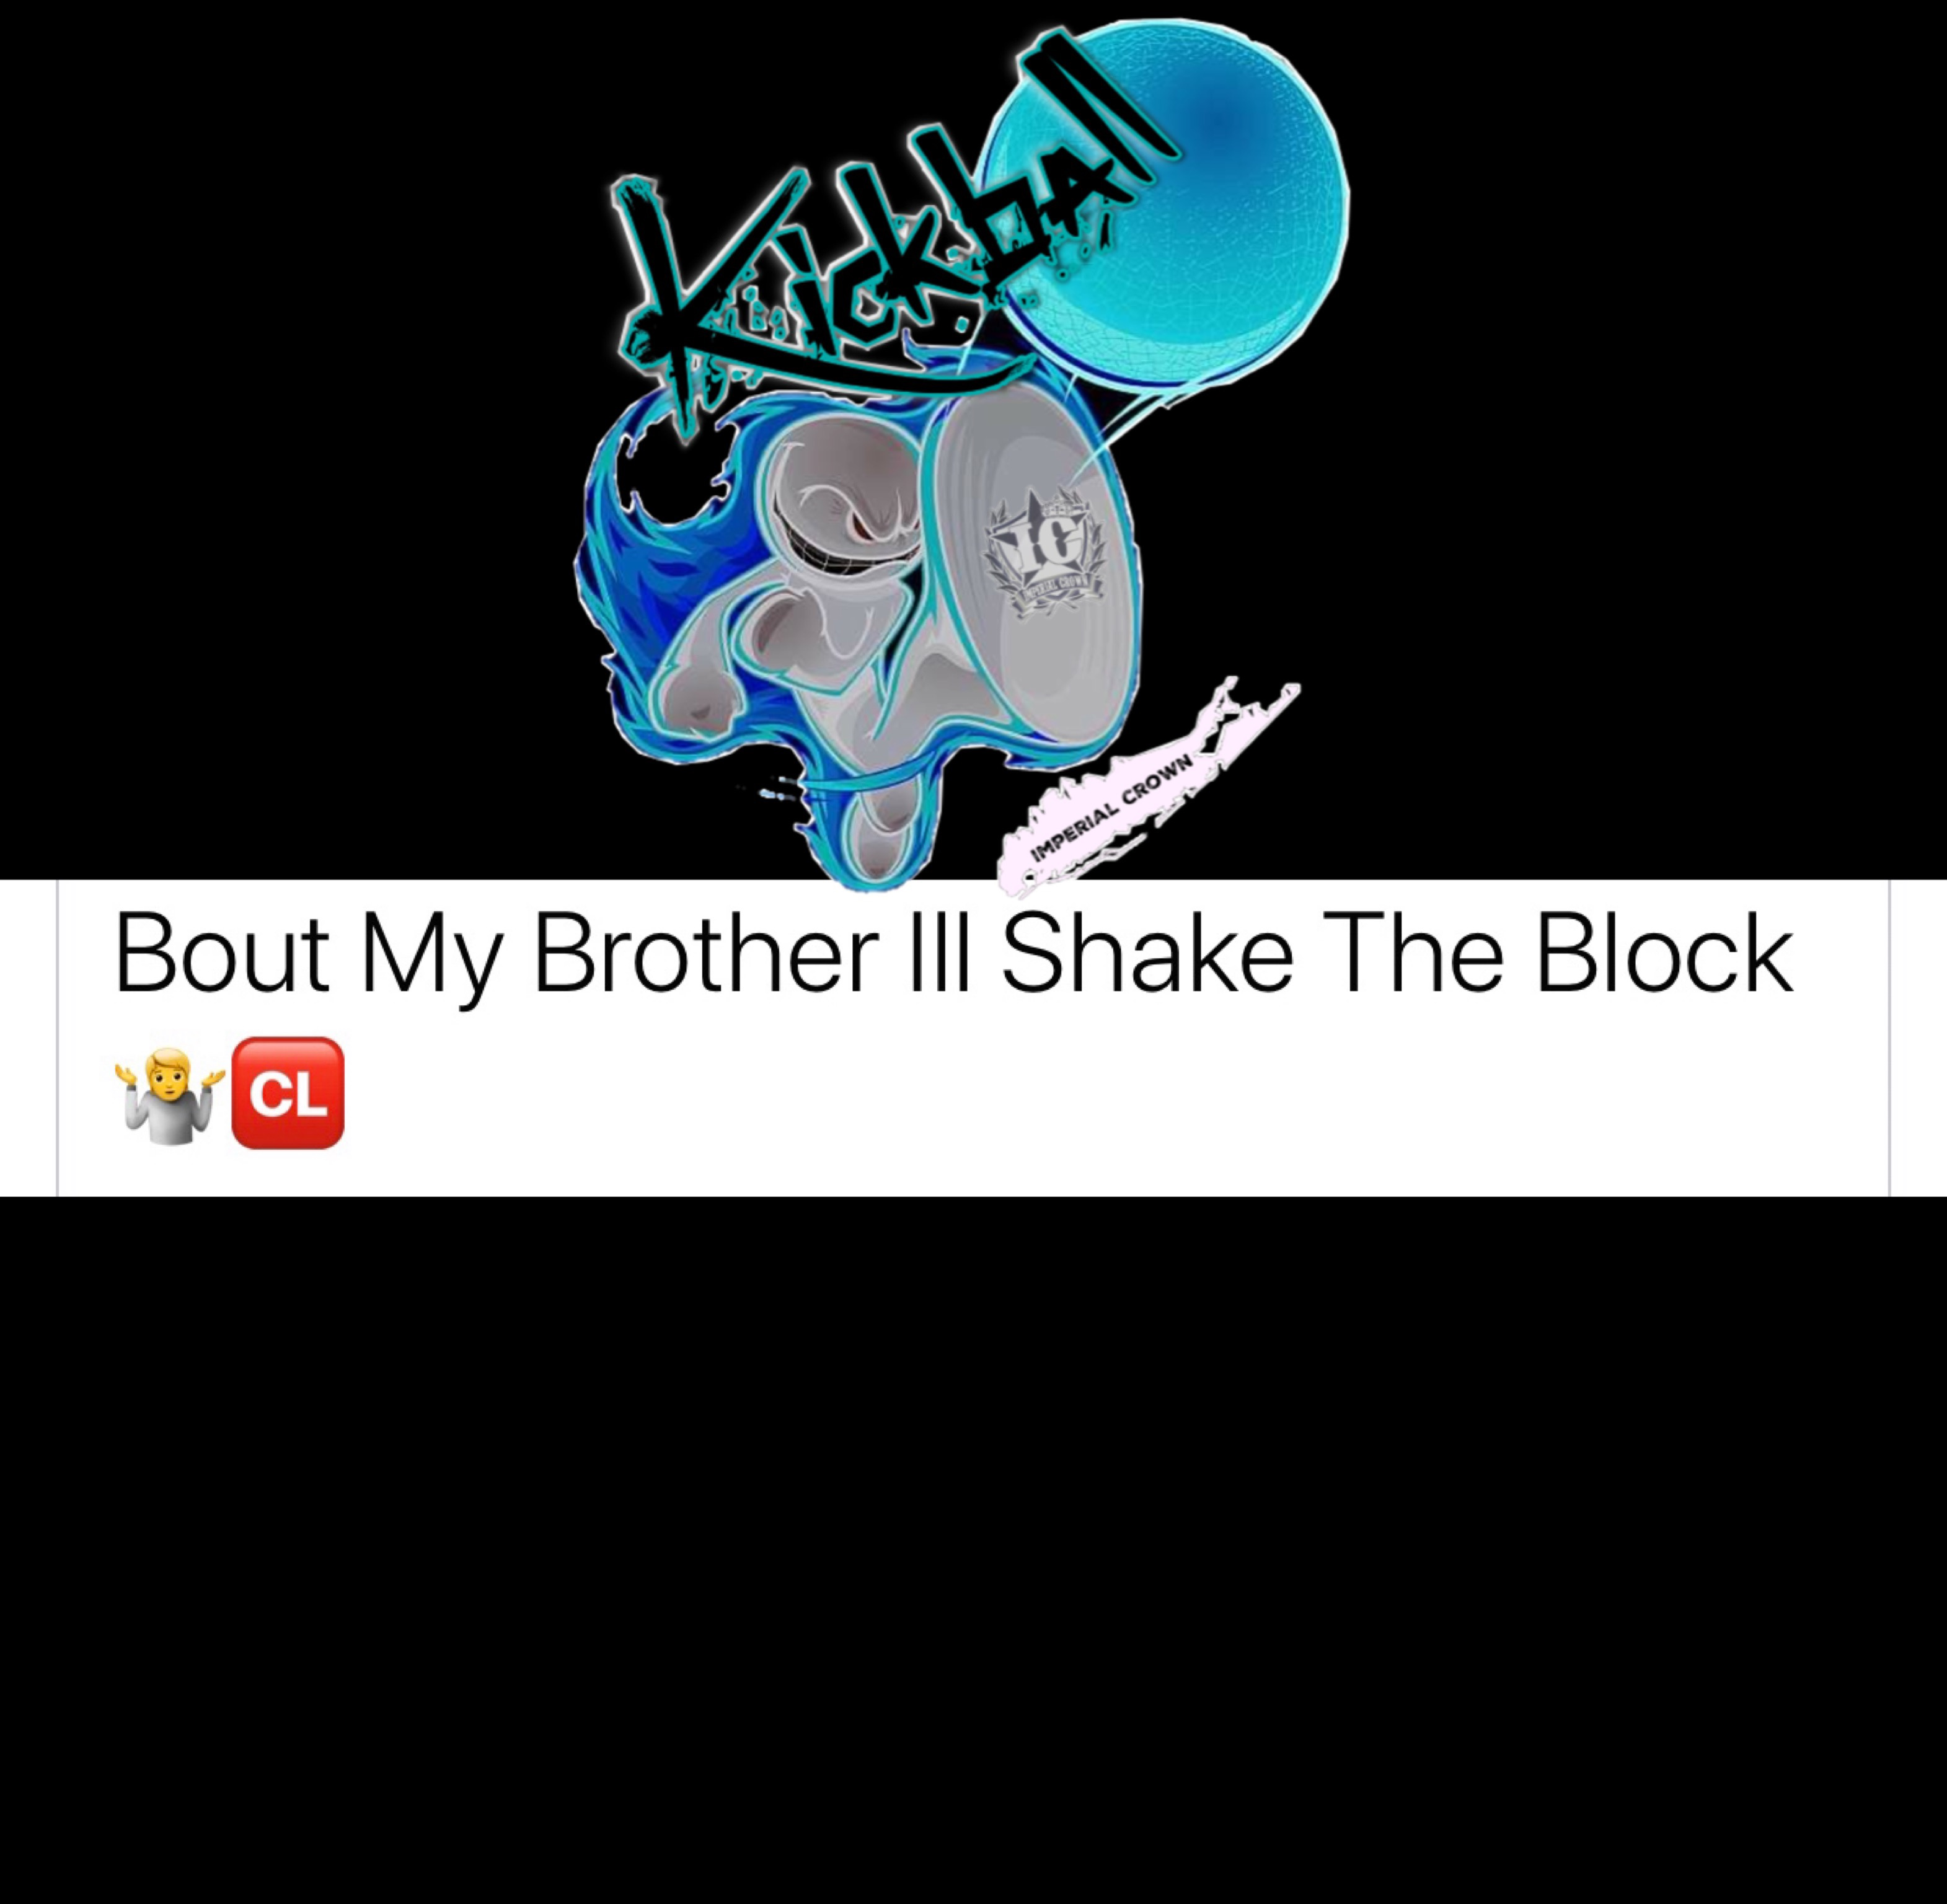 Bout my brother I'll shake the block